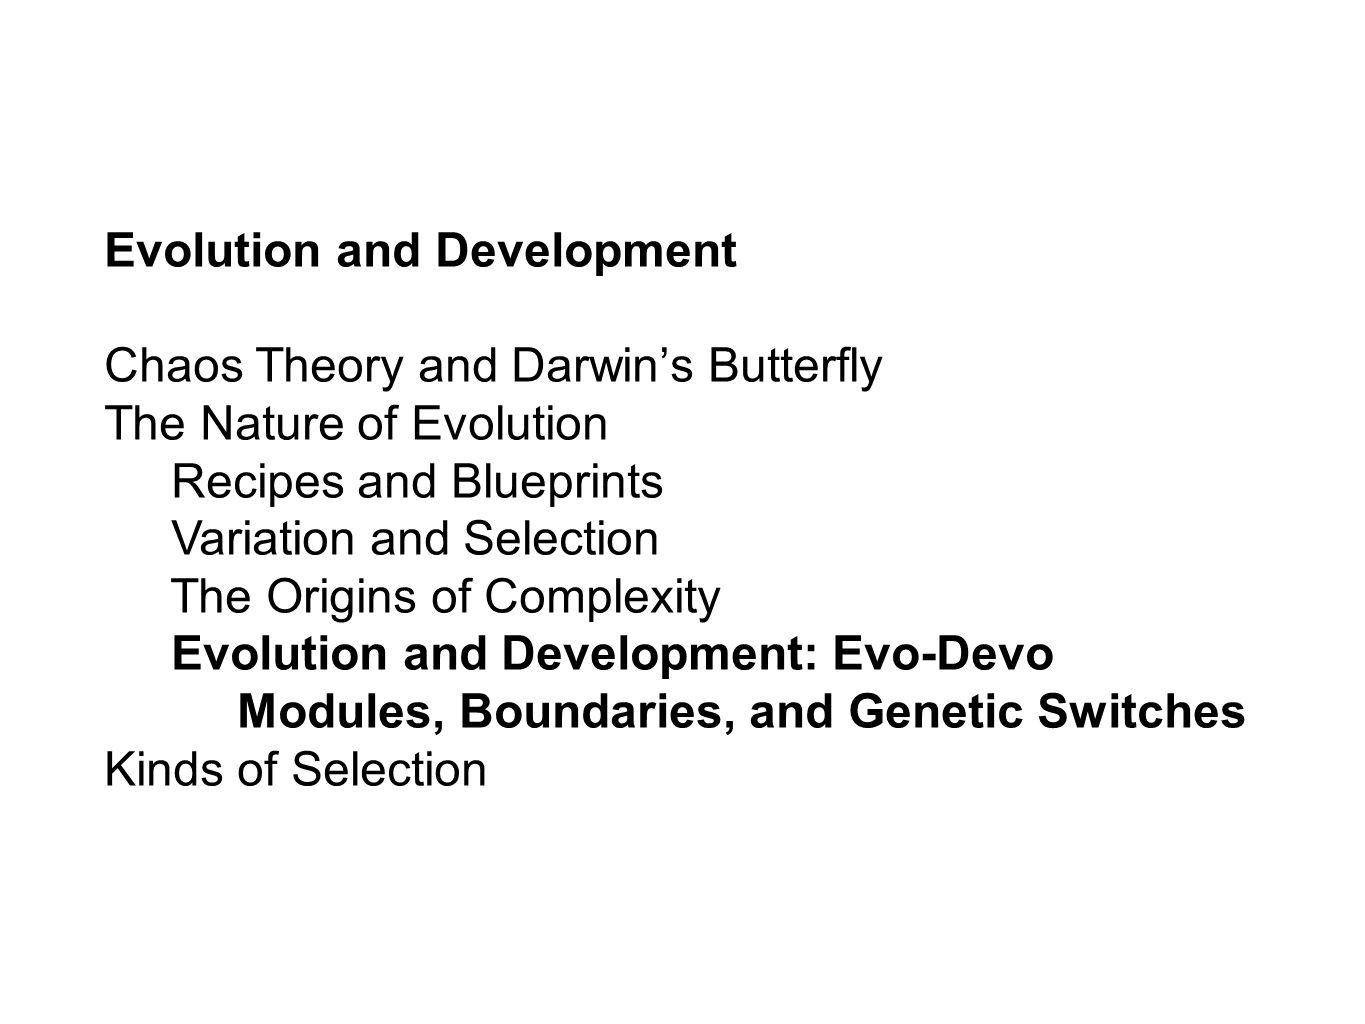 Evolution and Development Chaos Theory and Darwins Butterfly The Nature of Evolution Recipes and Blueprints Variation and Selection The Origins of Complexity Evolution and Development: Evo-Devo Modules, Boundaries, and Genetic Switches Kinds of Selection